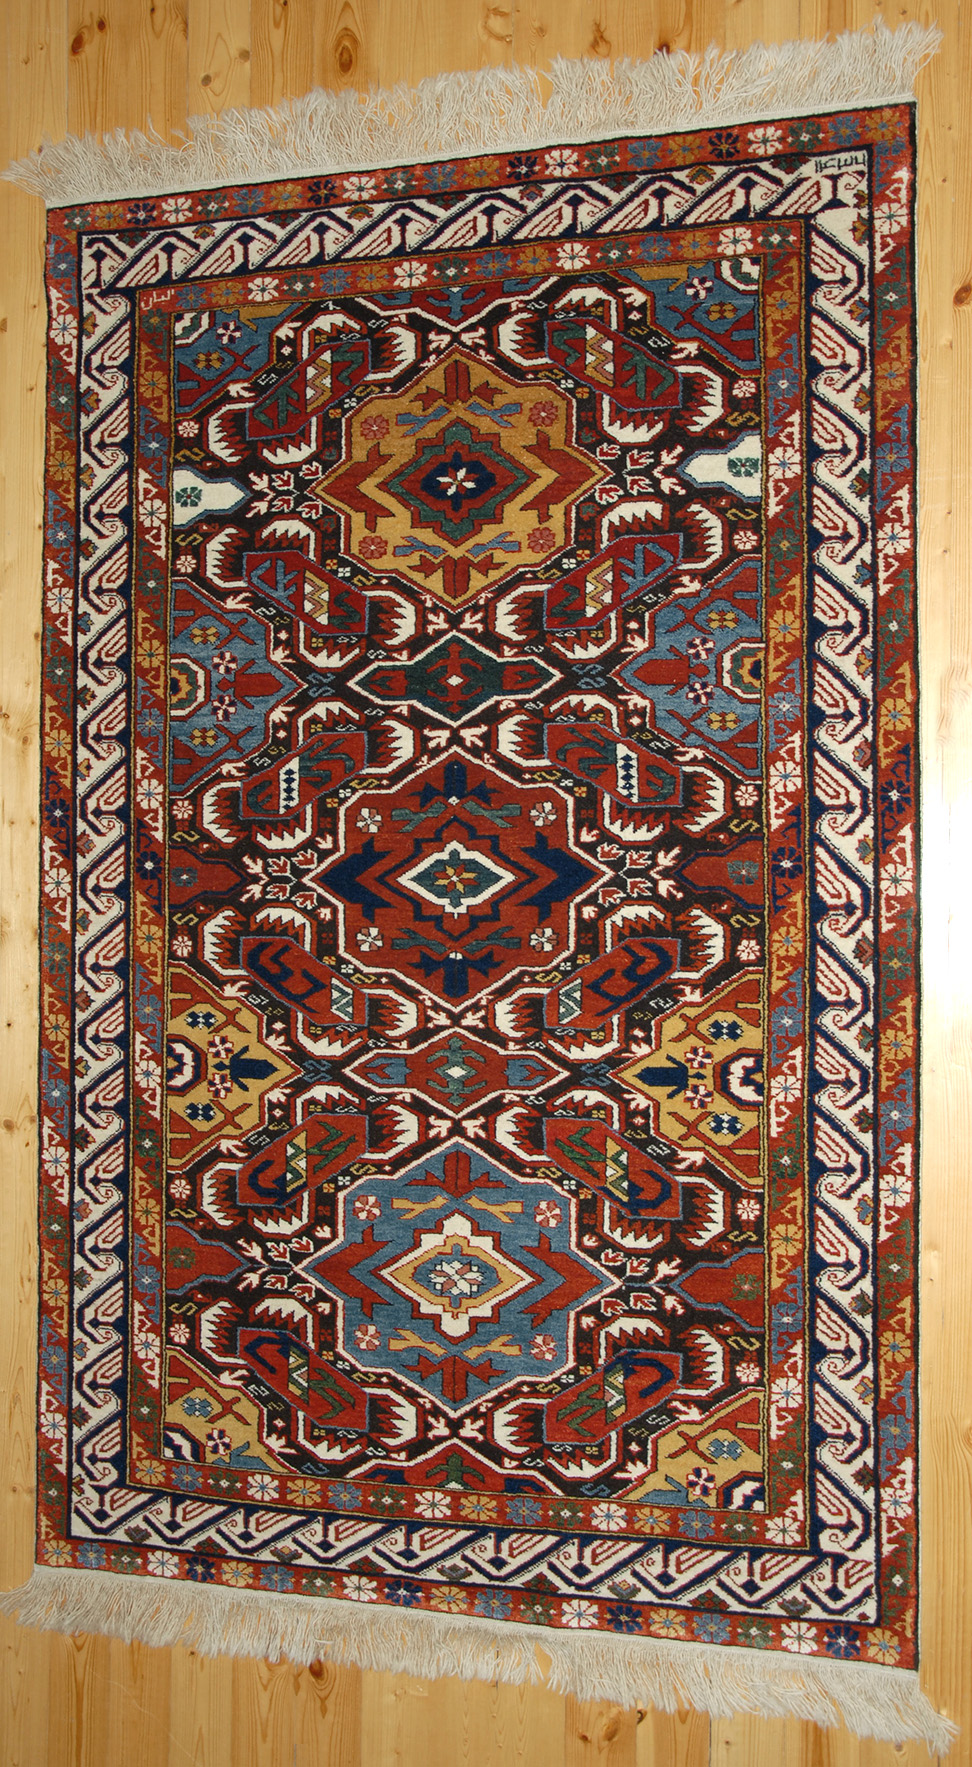 Kuba Alpan Rug With The Quot Crab Quot Design In A Dark Brown Ground